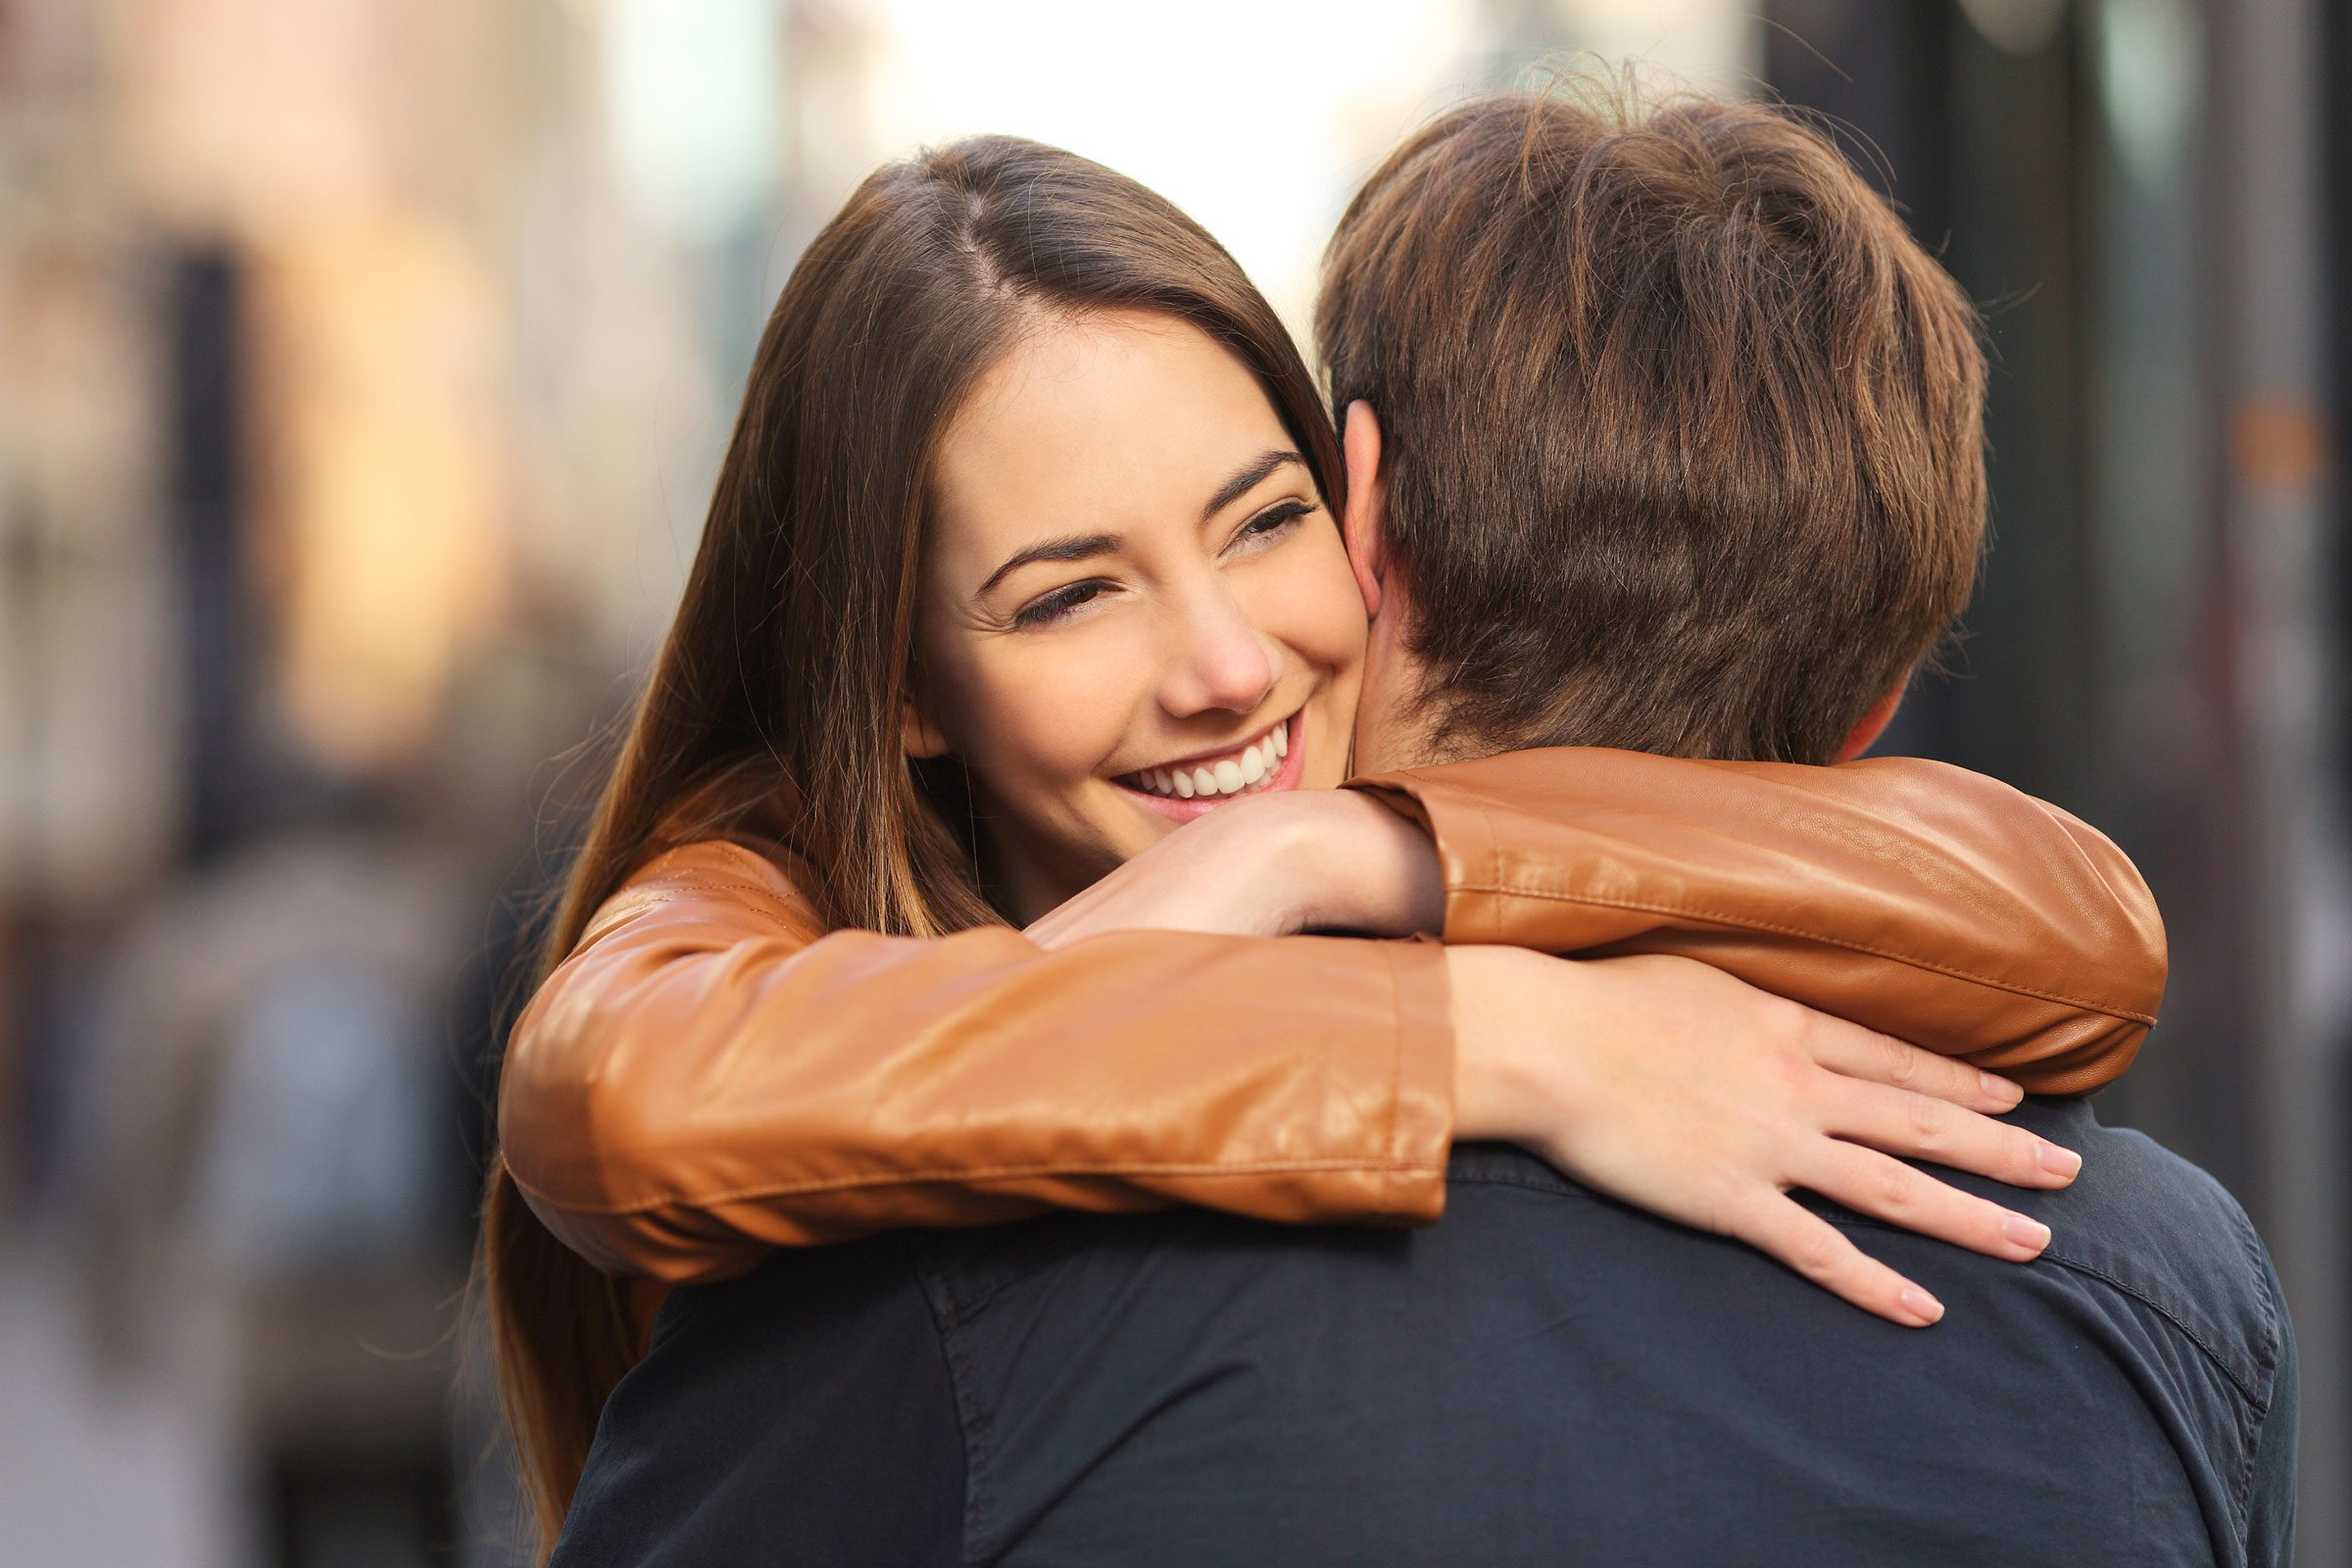 Dating an introvert 10 fun date ideas